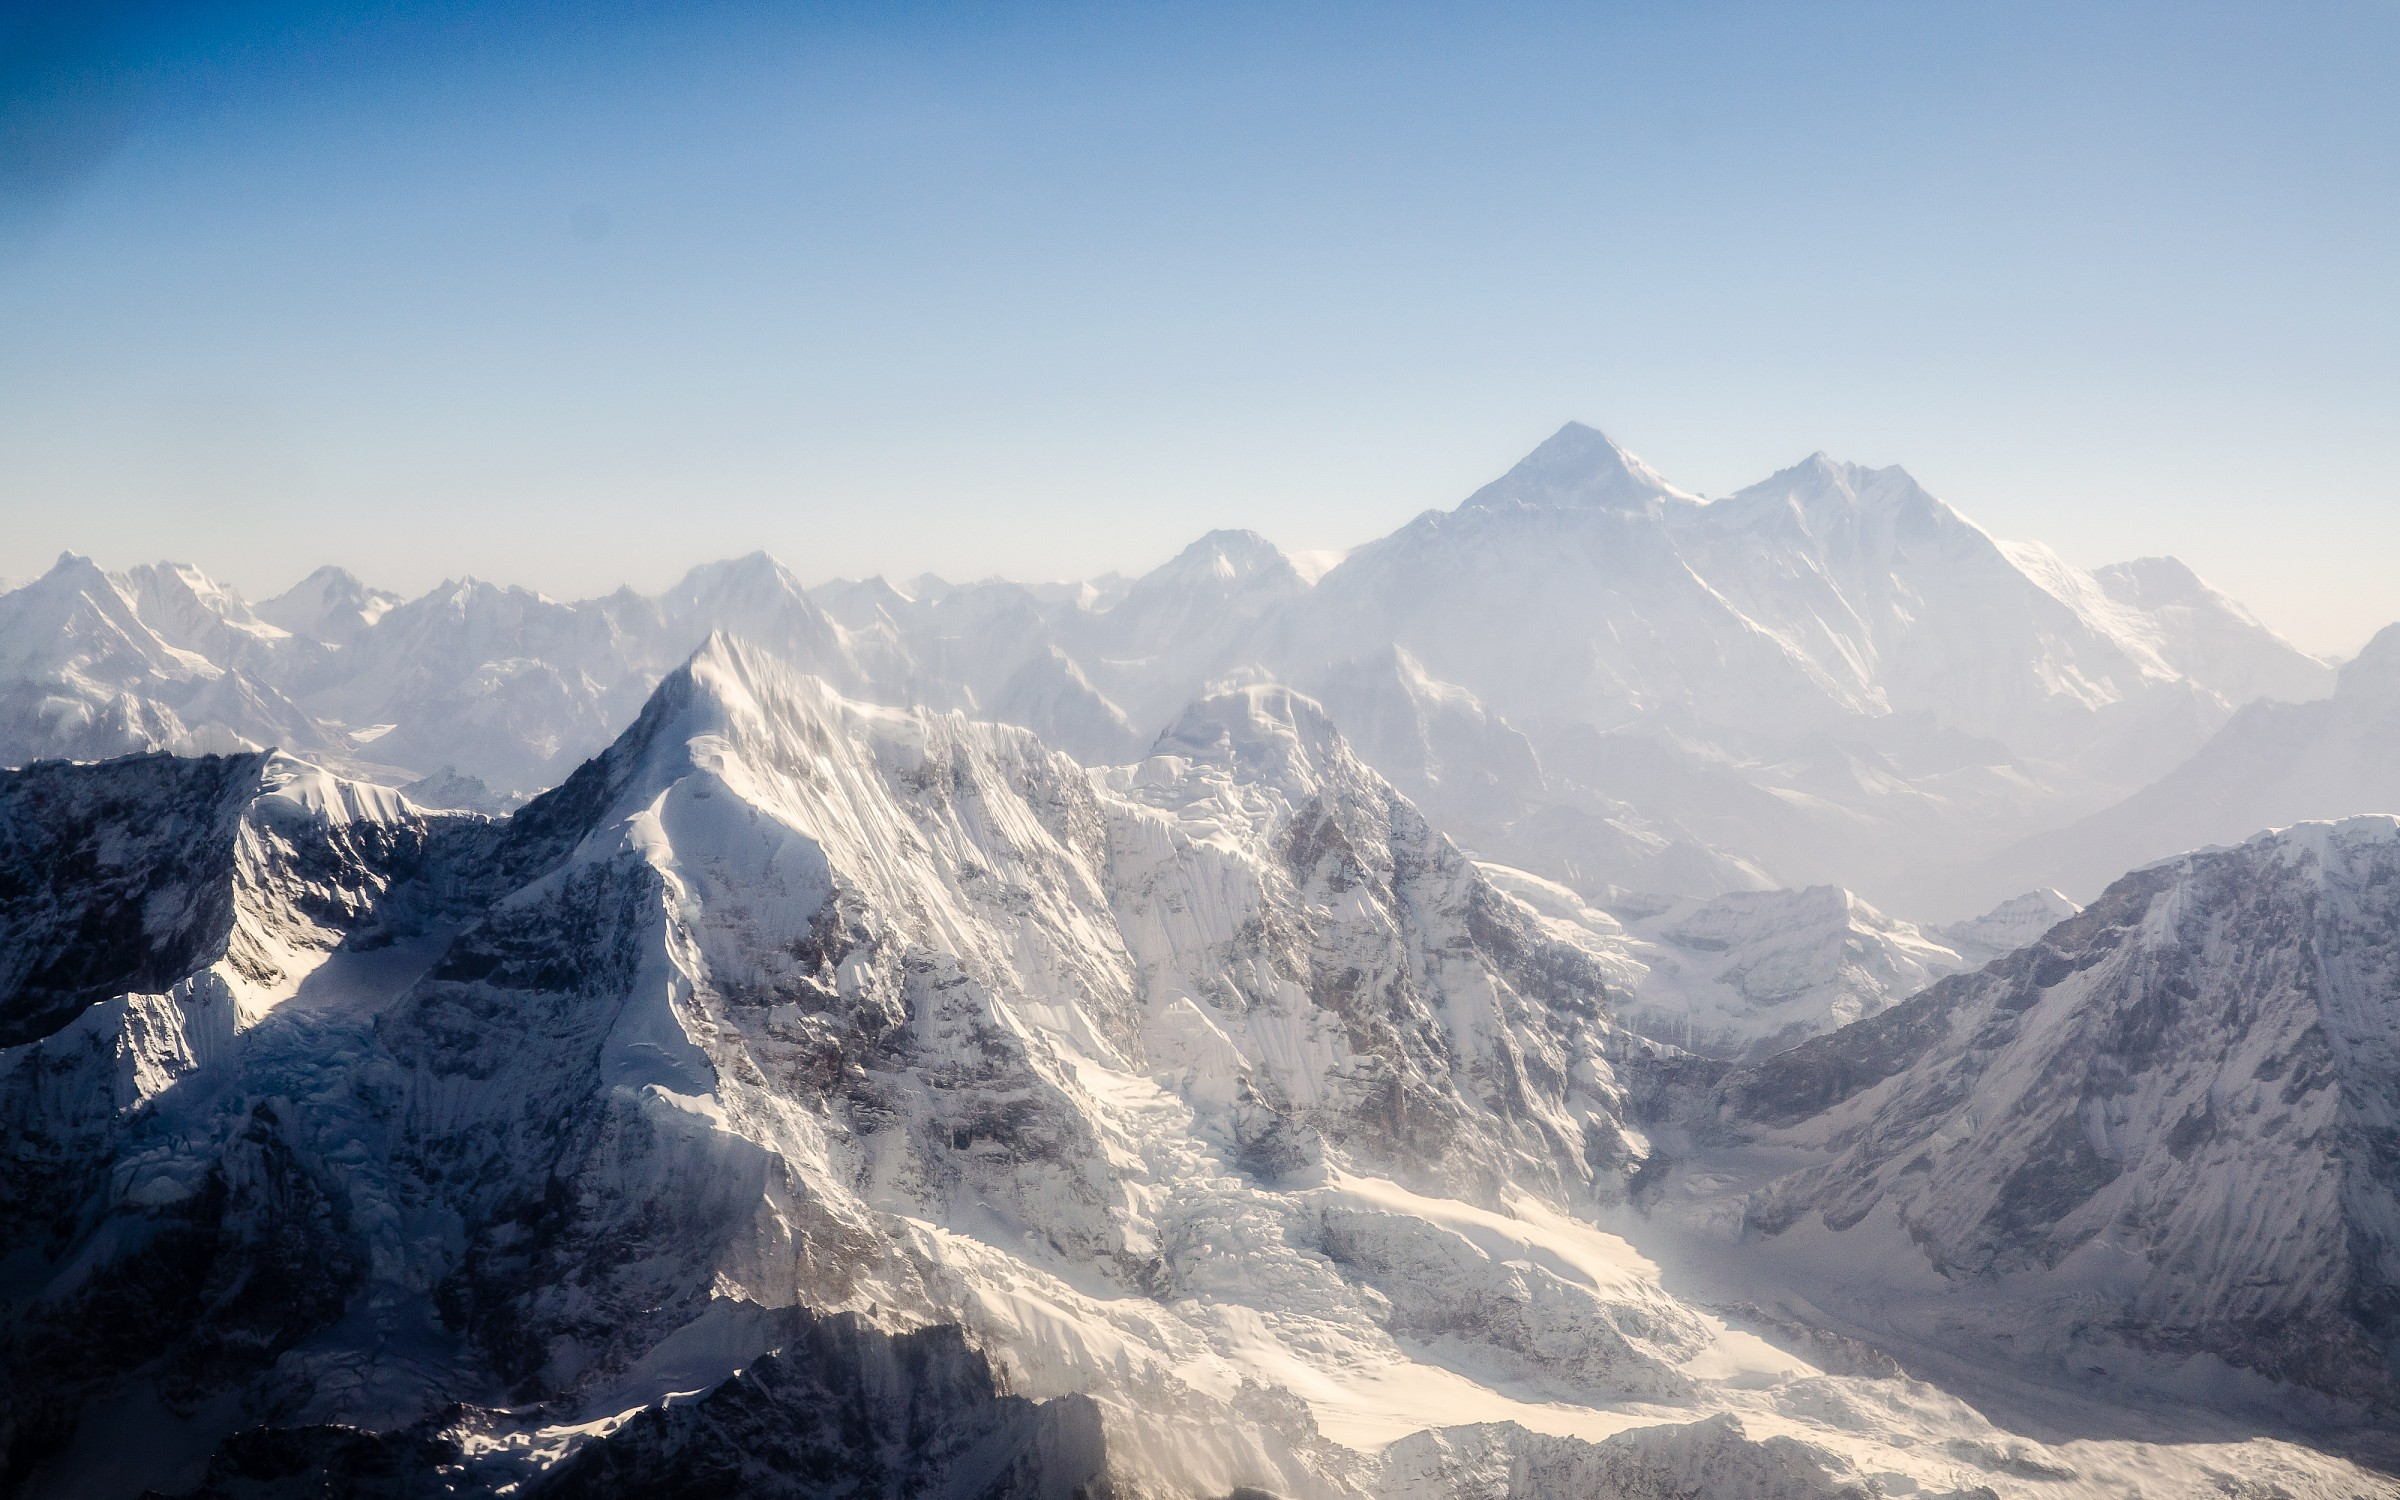 His majesty the Everest...